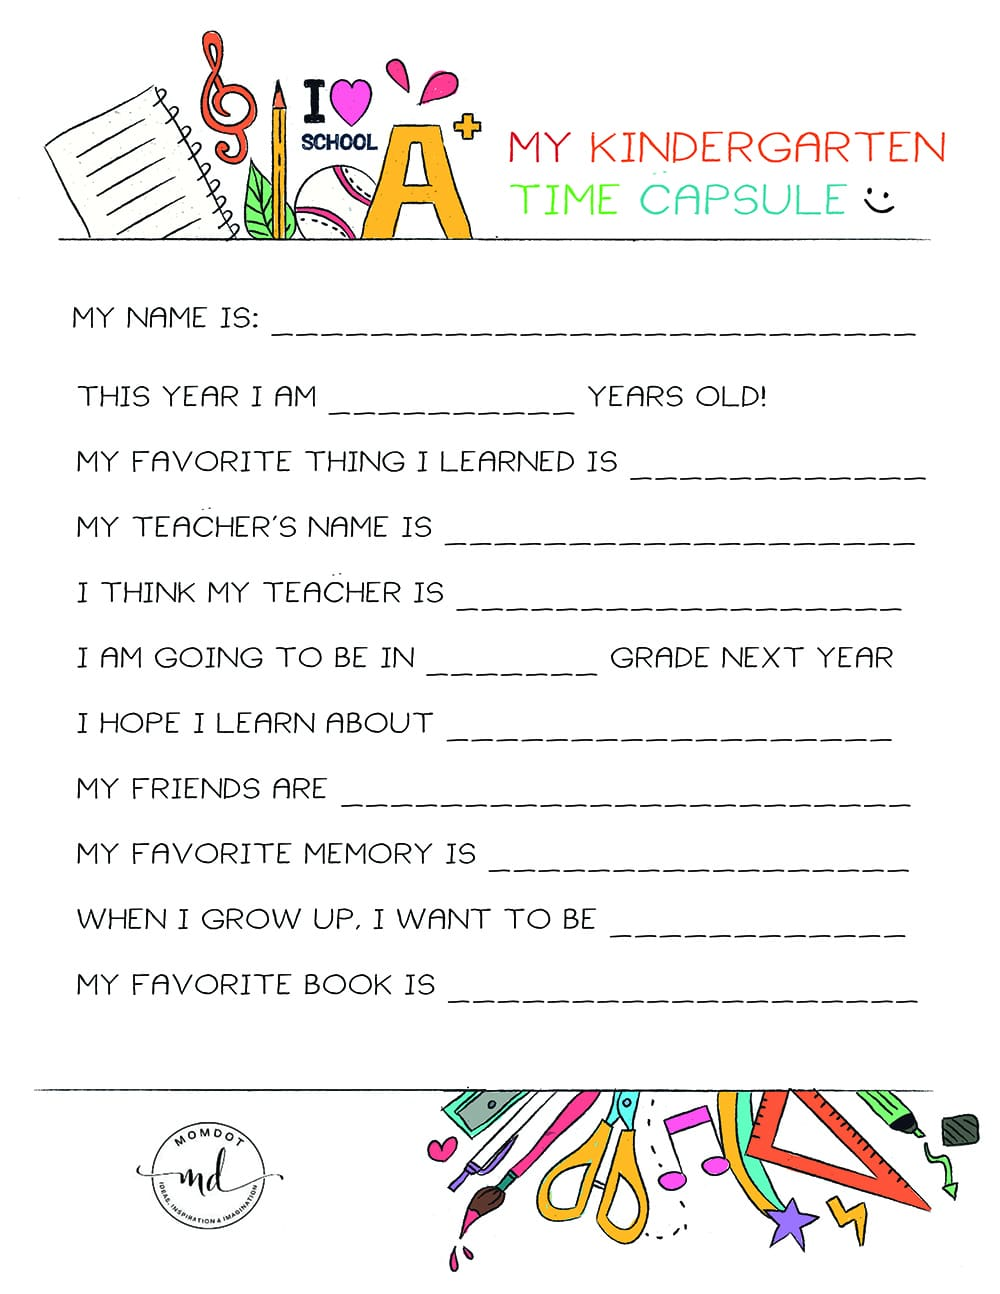 kindergarten time capsule free printable